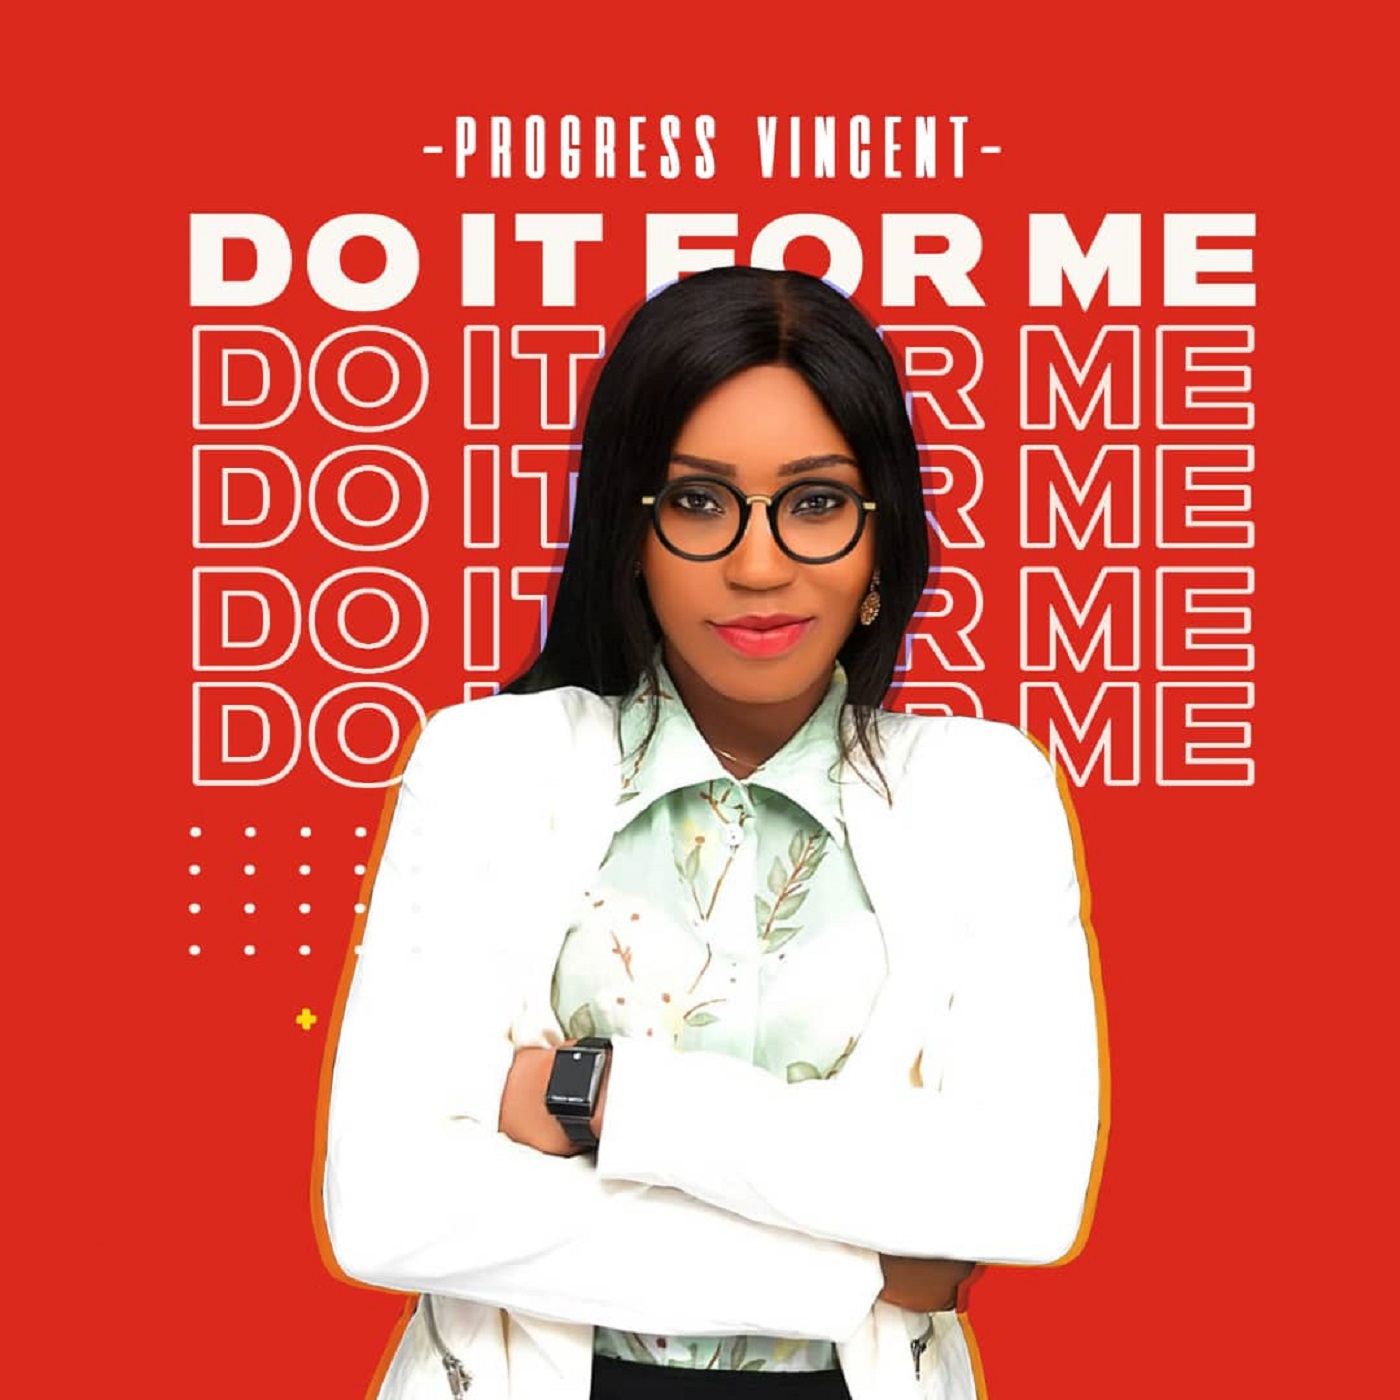 Progress Vincent – Do It For Me